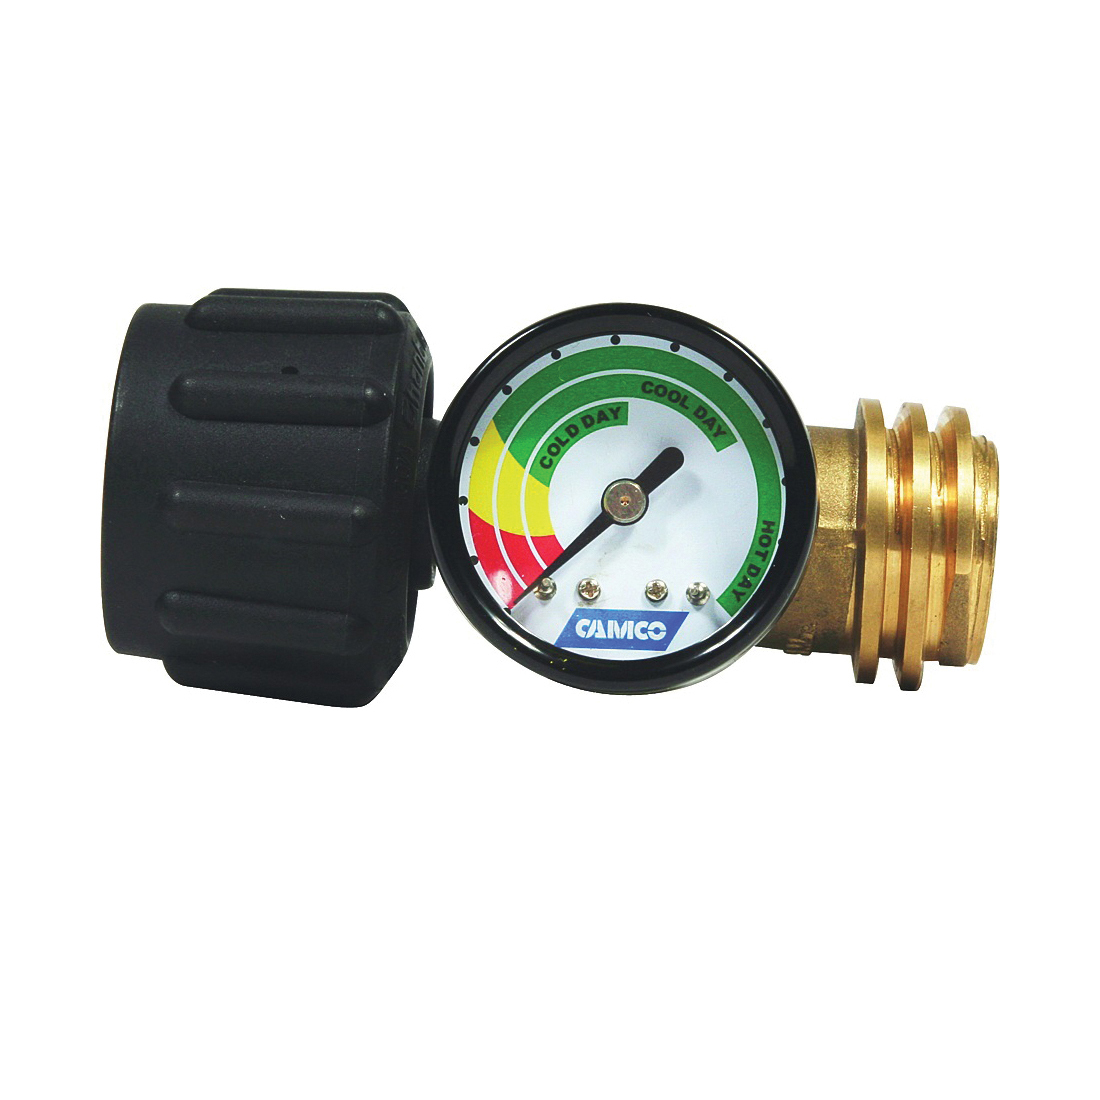 Picture of CAMCO 59023 Propane Gauge/Leak Detector